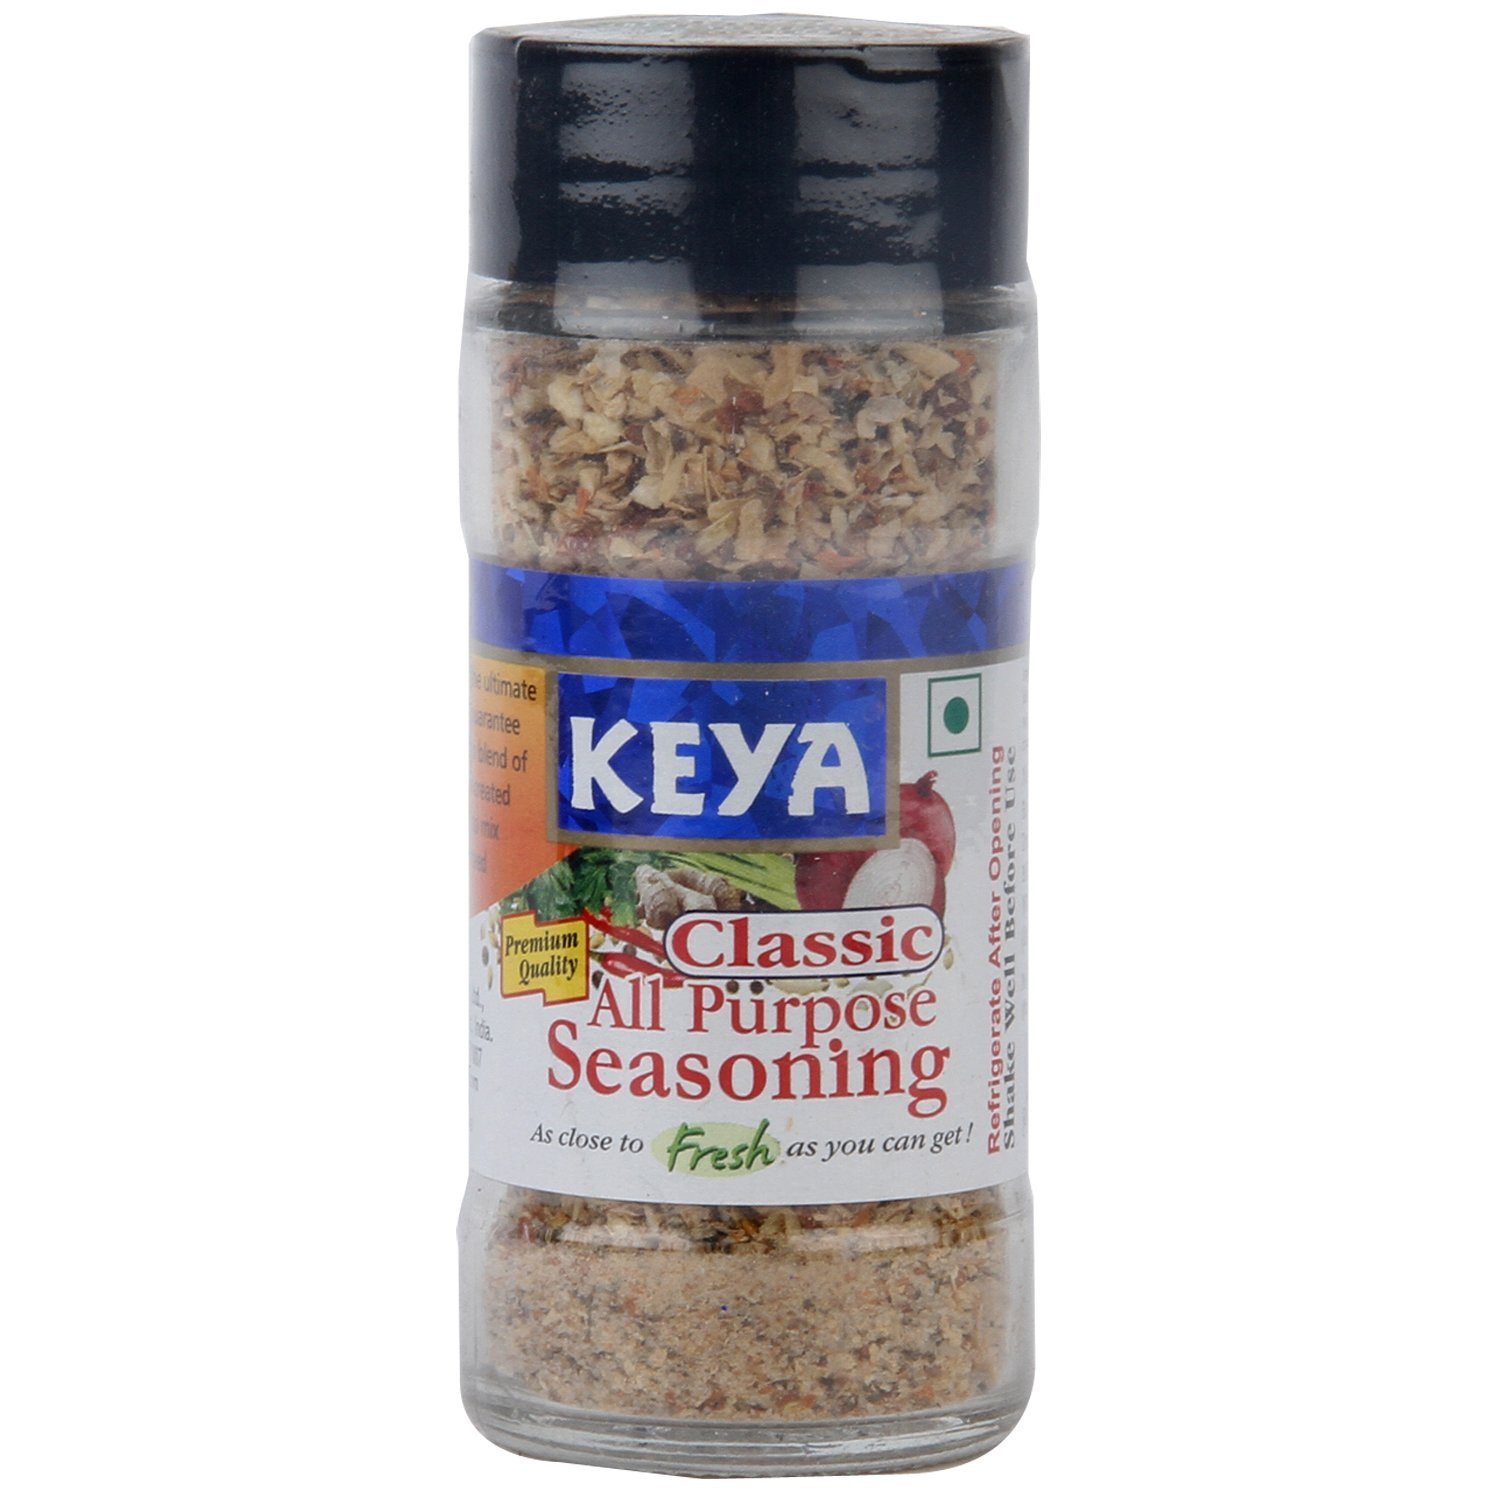 Keya All Purpose Seasoning